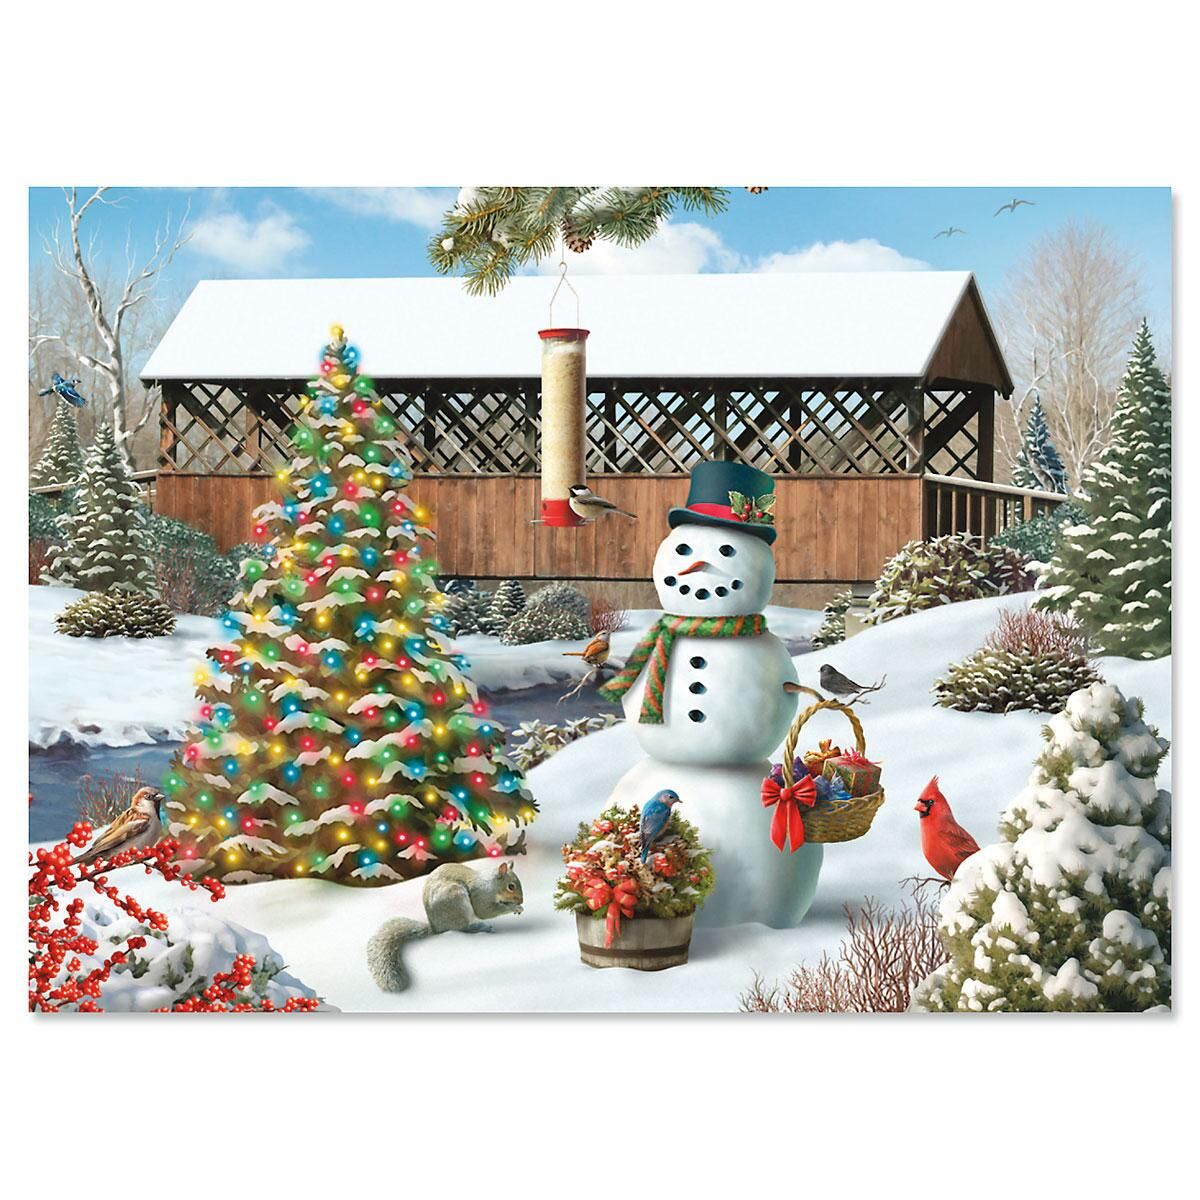 Countryside Nonpersonalized Christmas Cards - Set of 72